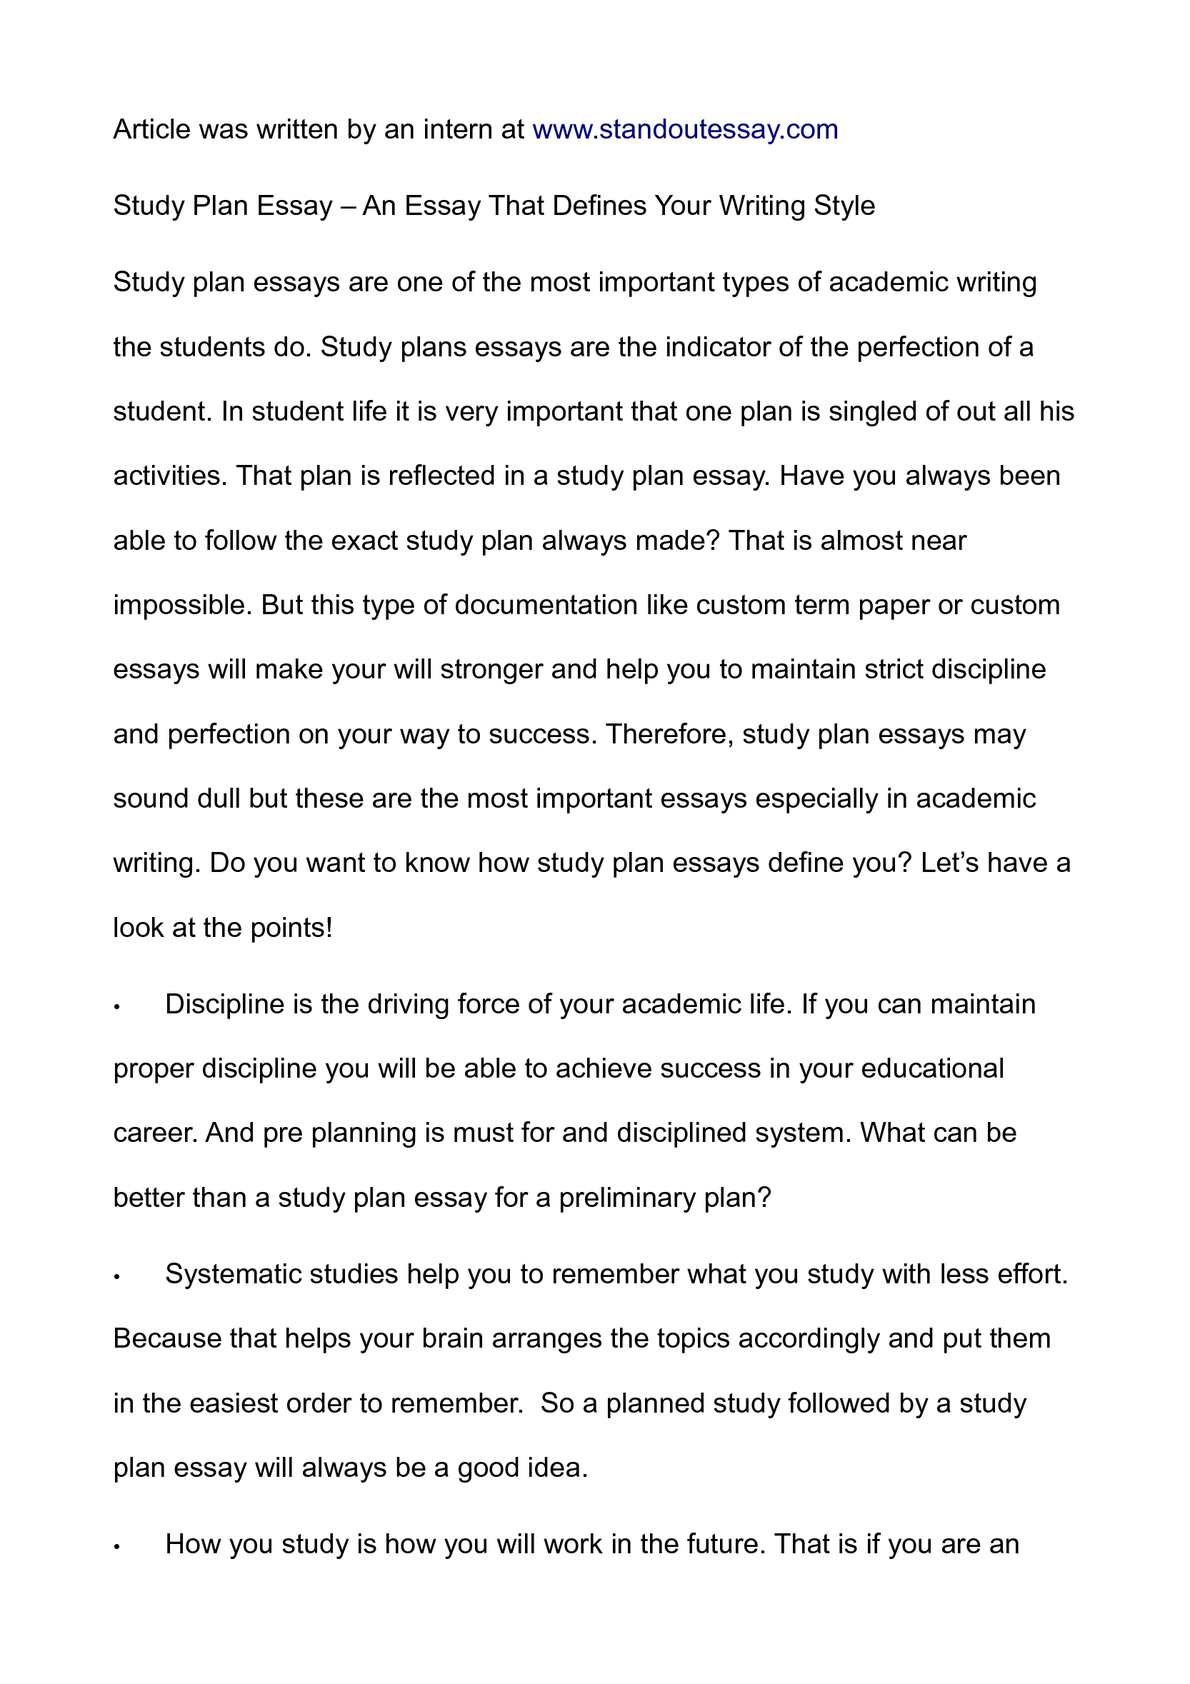 004 Definition Of Success Essay P1 Awesome Outline Full